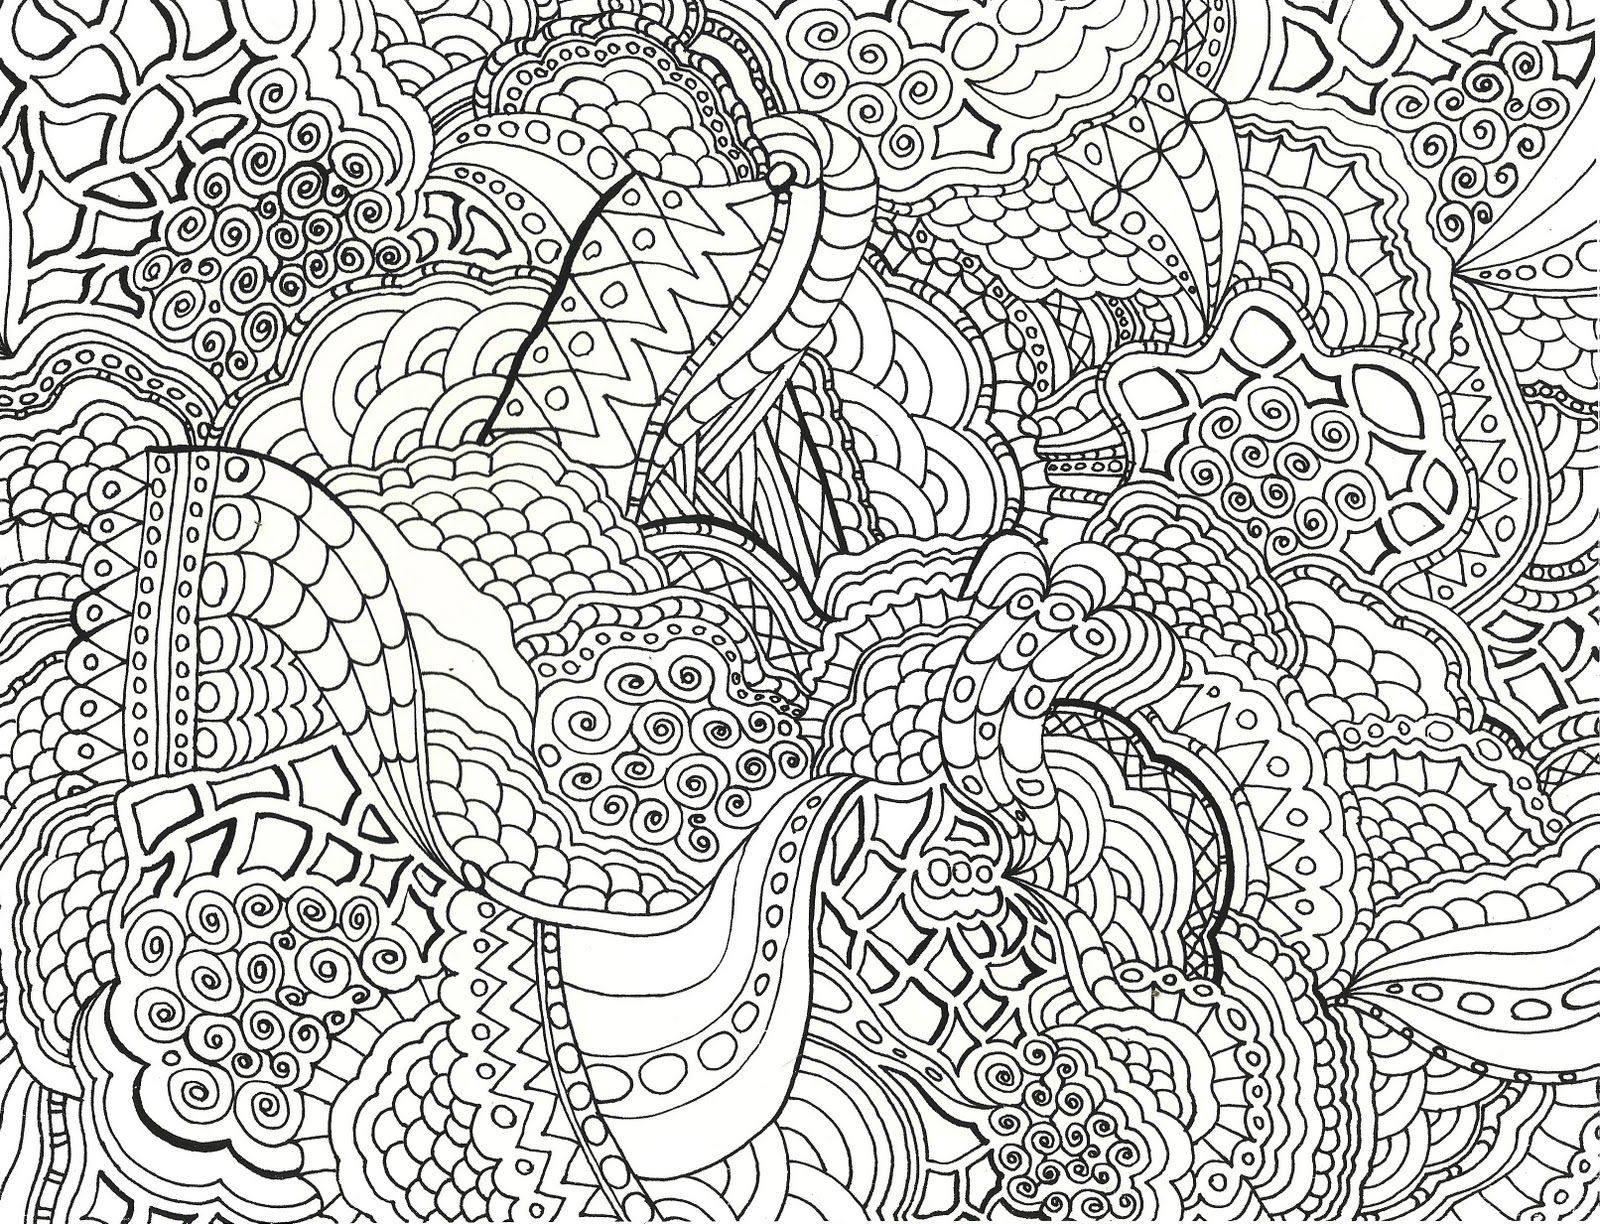 Colouring in pages mandala - These Printable Mandala And Abstract Coloring Pages Relieve Stress And Help You Meditate Eye Opening